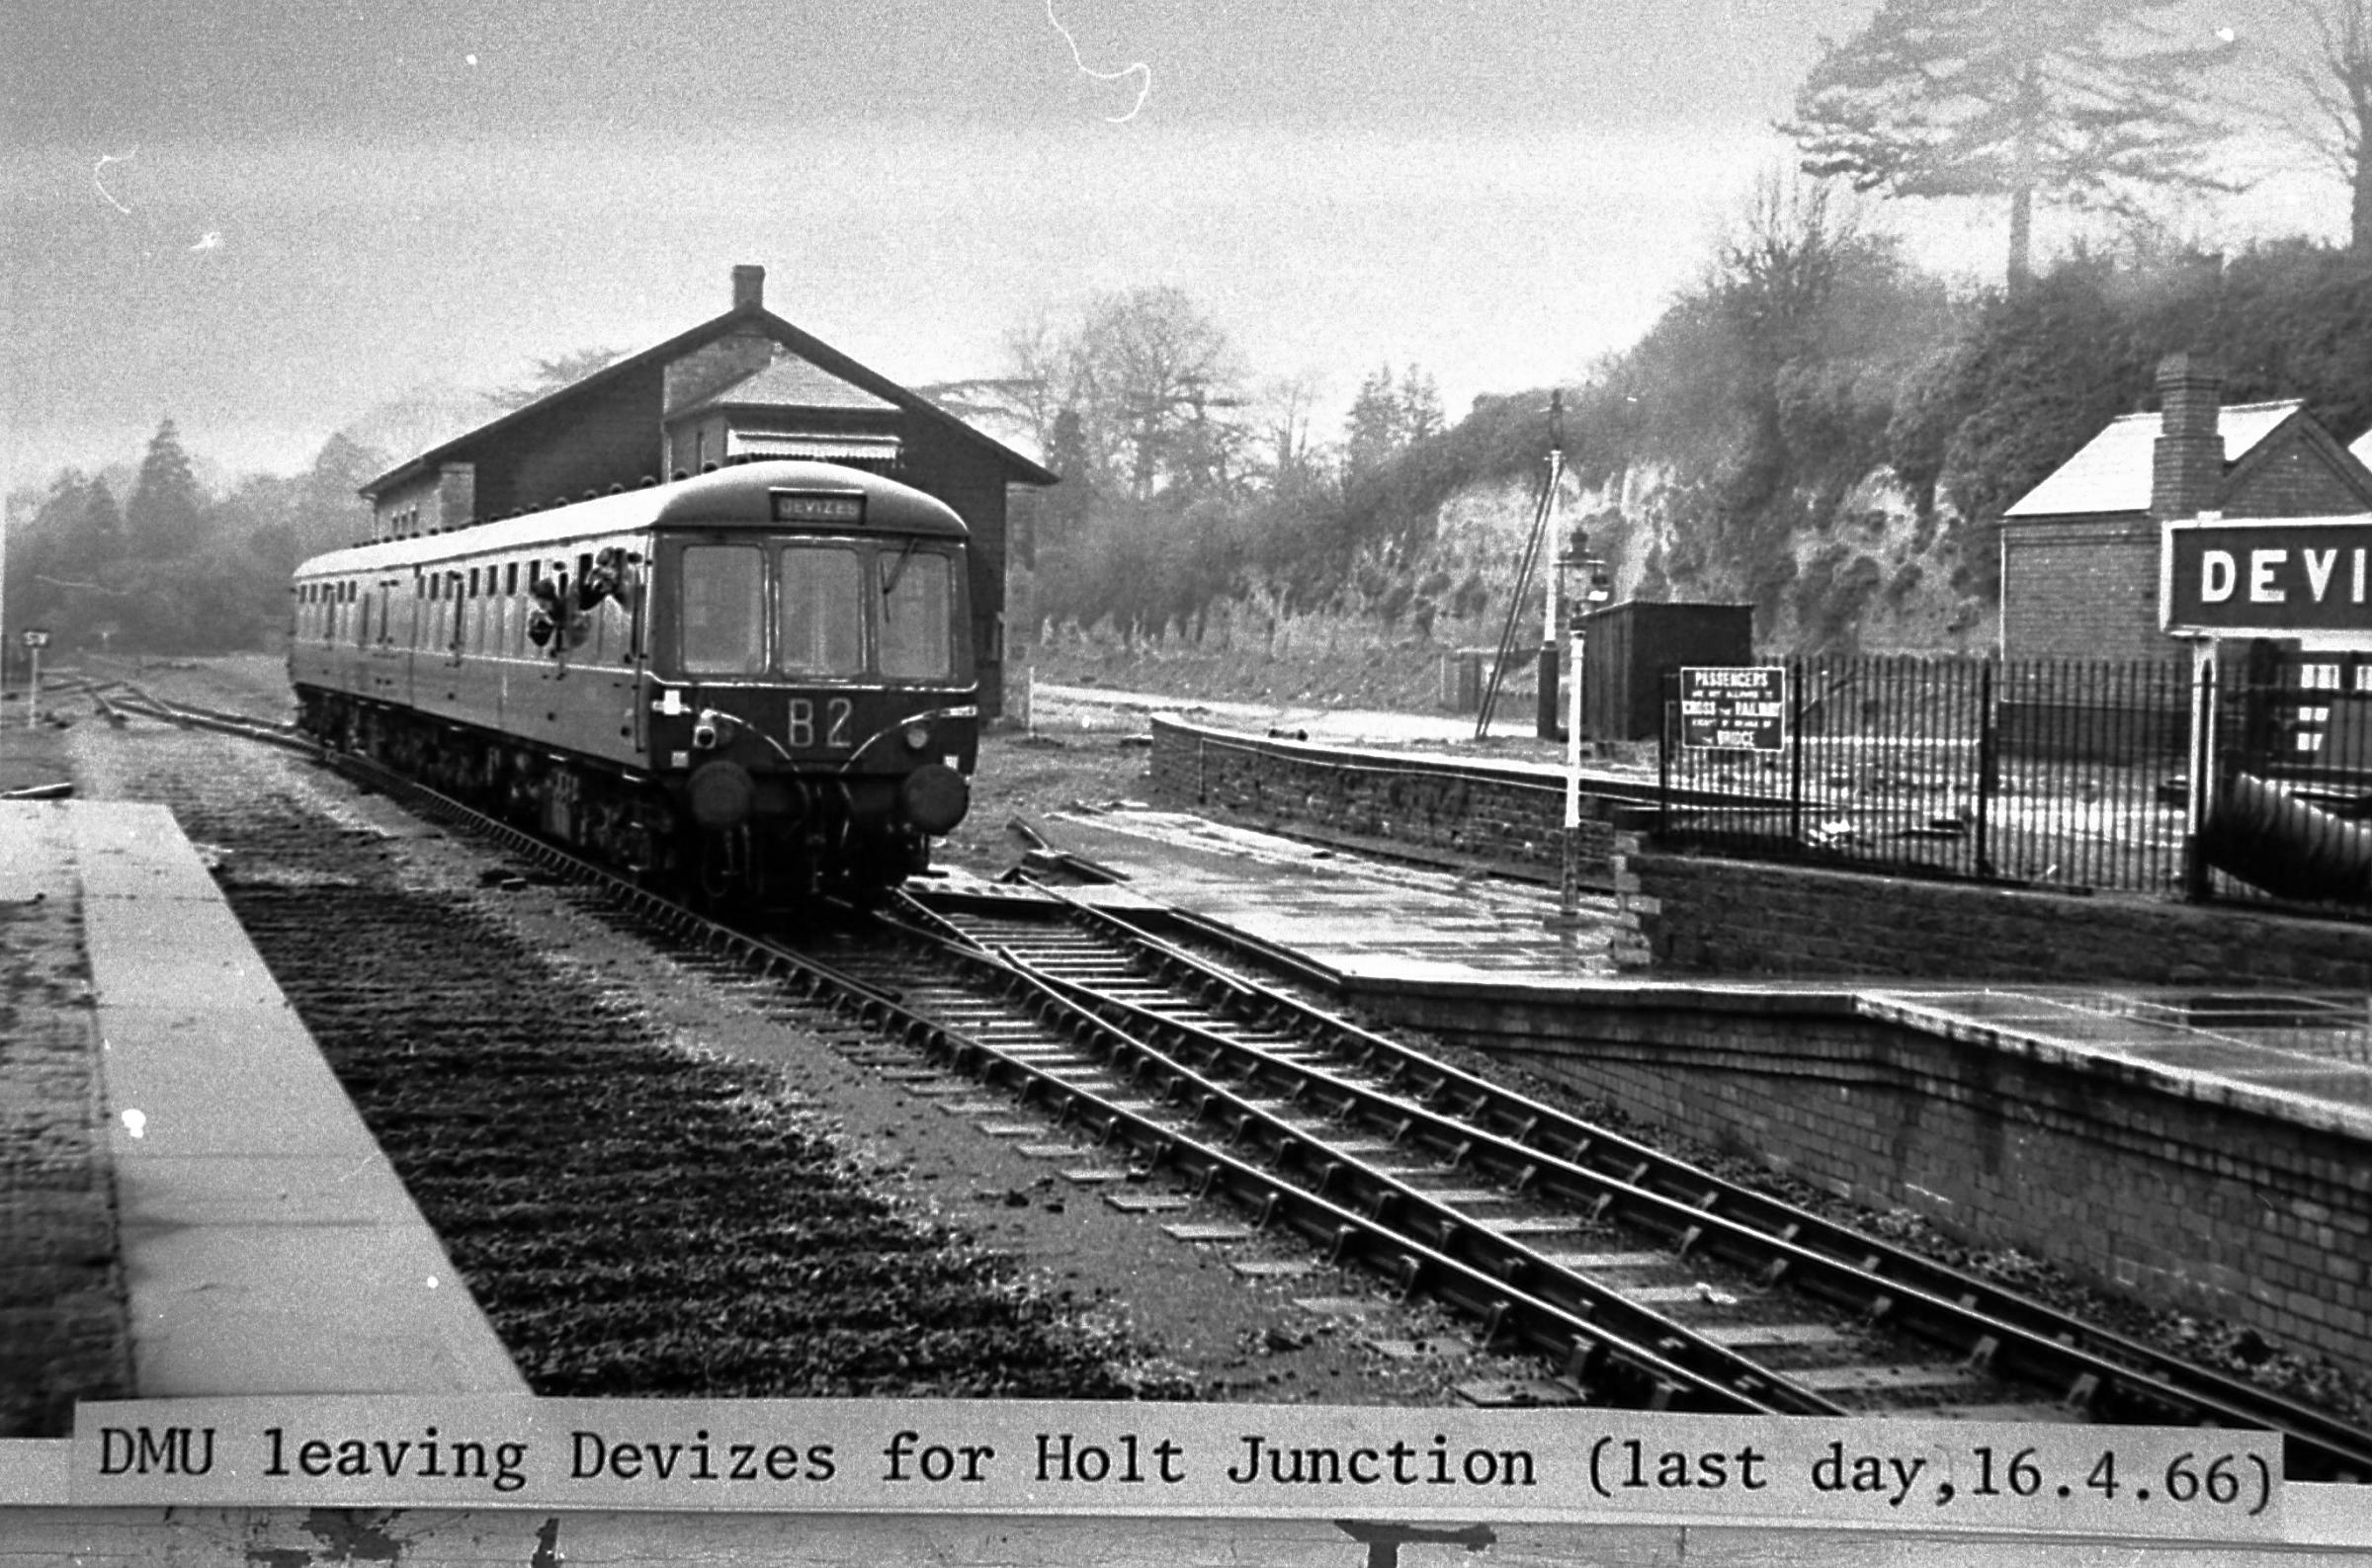 Devizes Station's last day of service on April 16, 1966. A diesel motor unit pulls the last train. Wiltshire Photographers Archive collated by Colin Kearley...